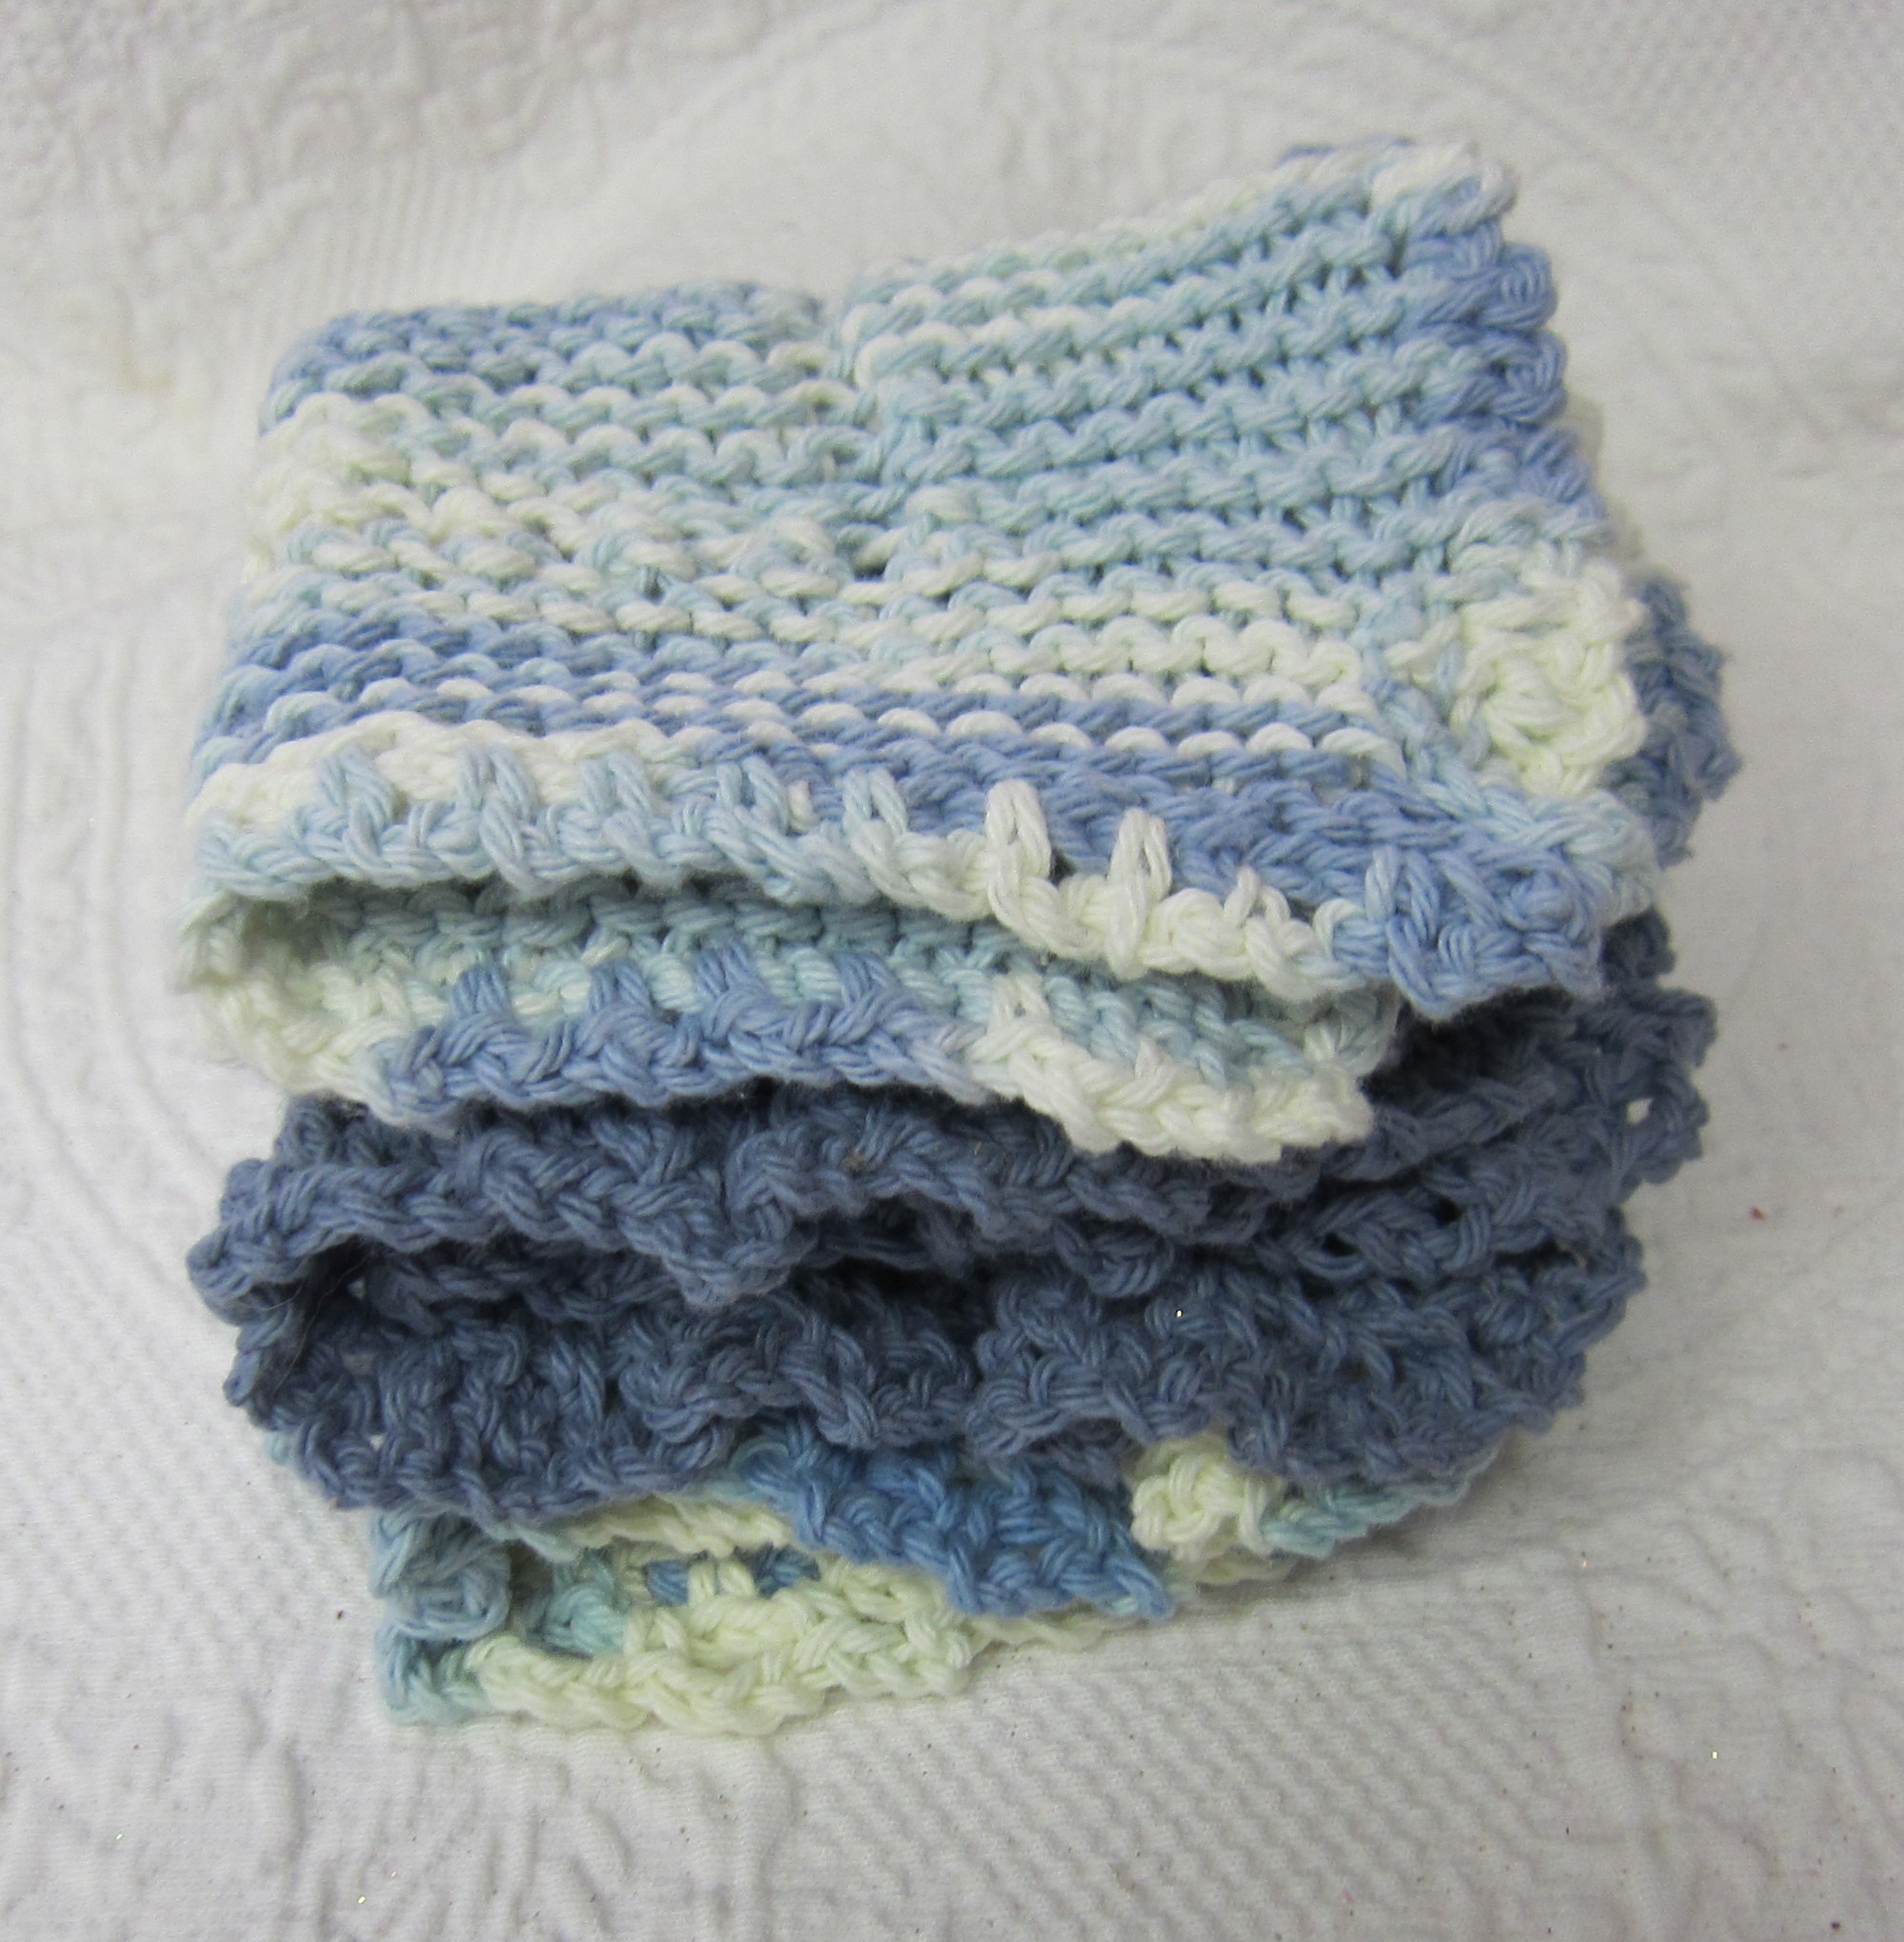 how to clean dish rags